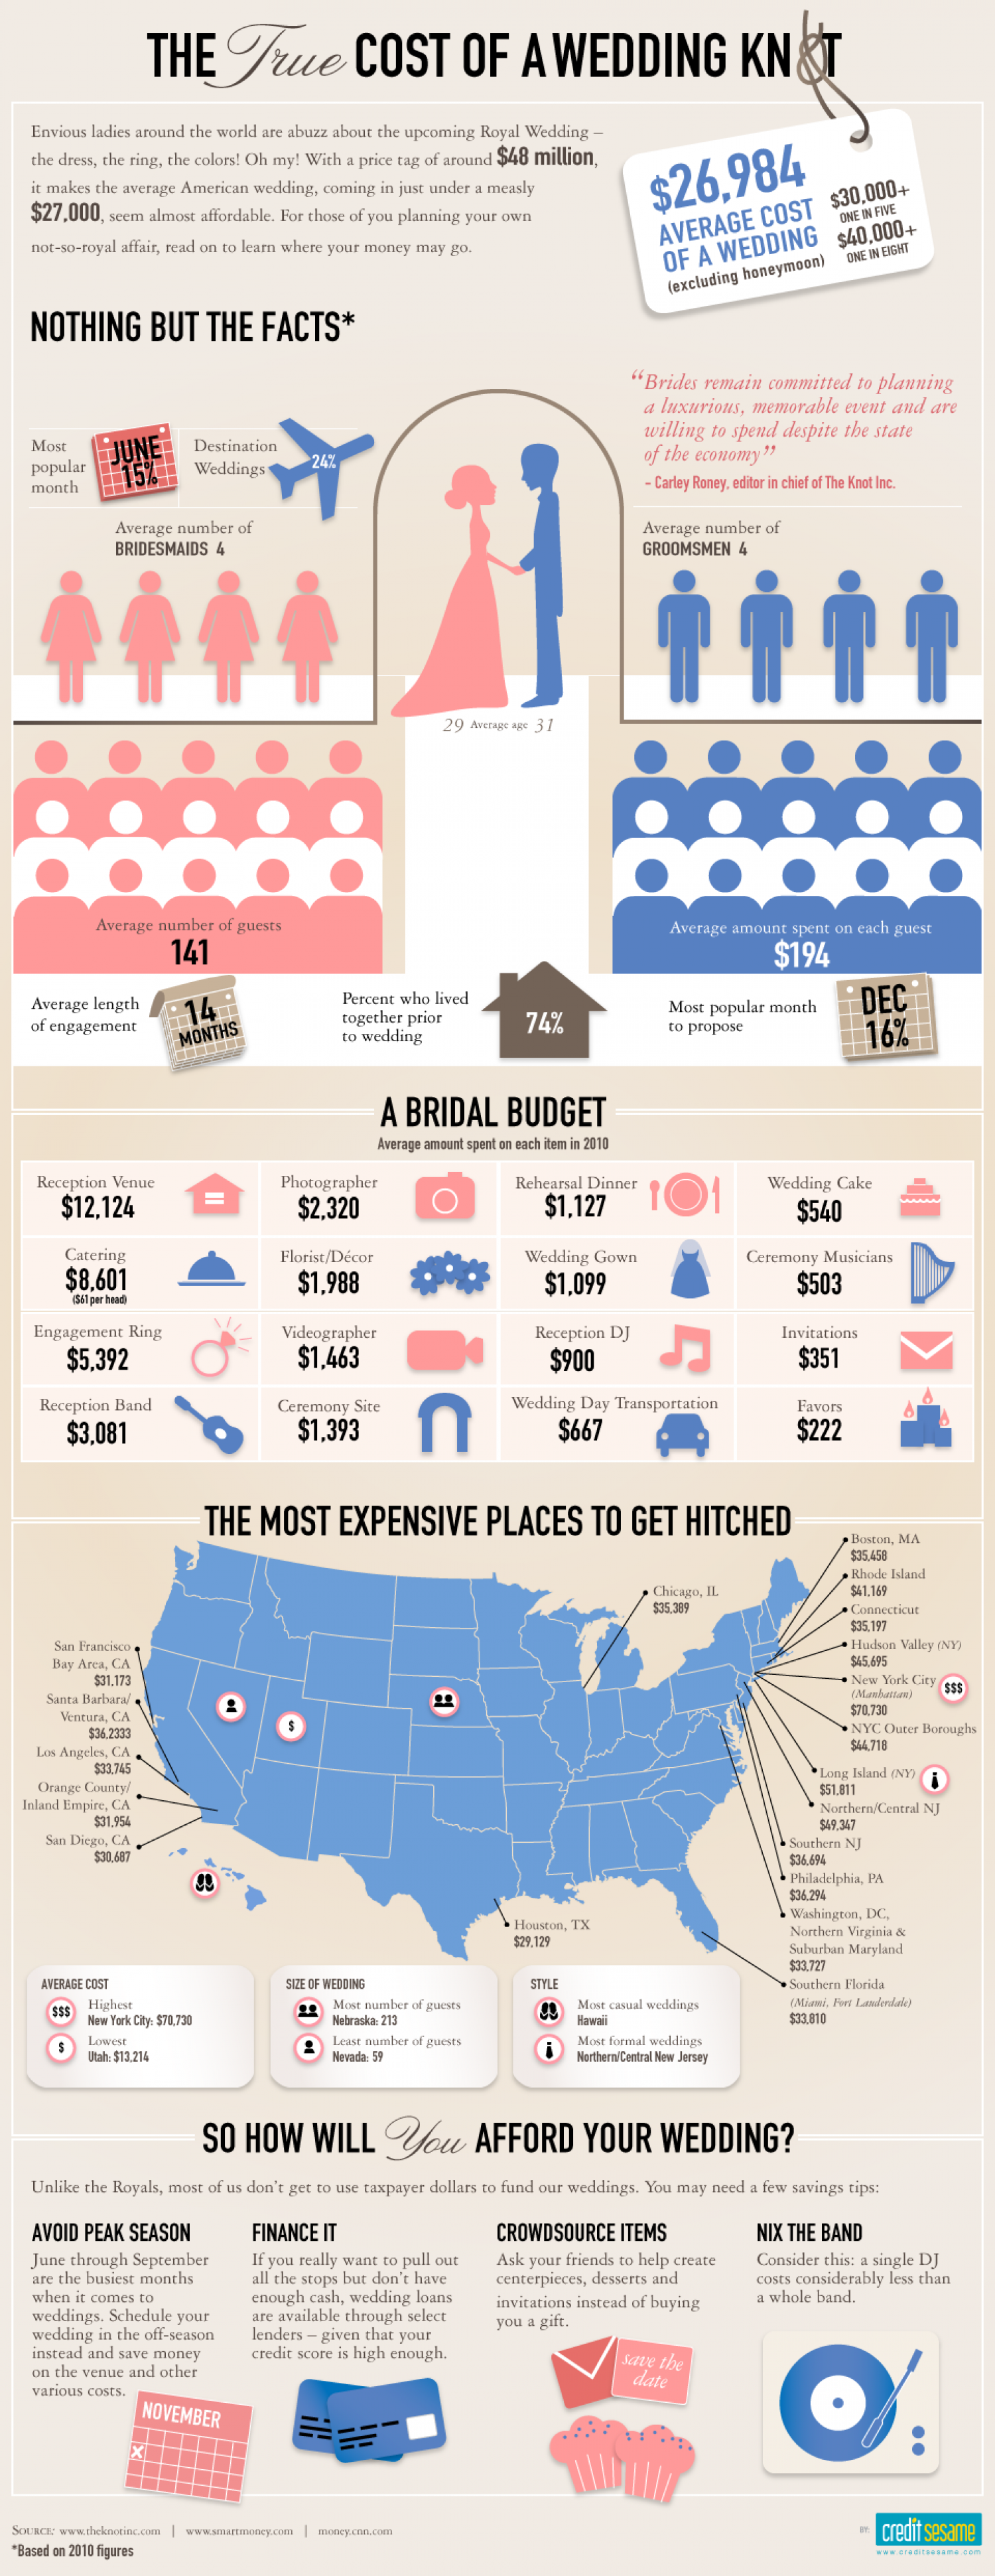 The True Cost of a Wedding Knot Infographic